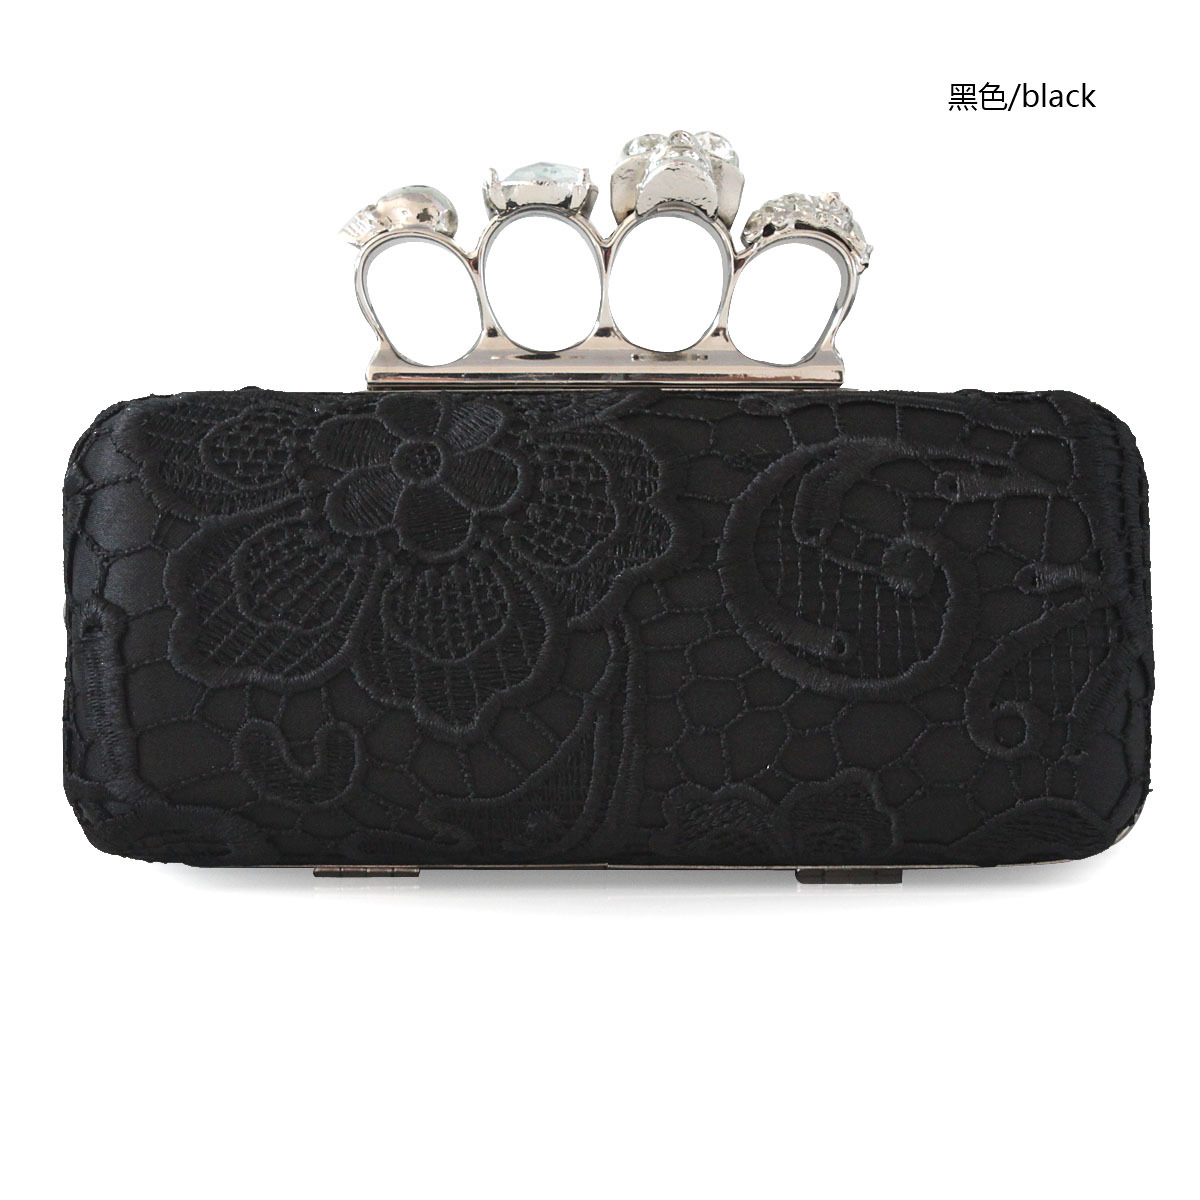 Free Shipping! Black chinese style embroidery diamond skull buckle dinner day clutch cocktail prom formal dress clutch bag